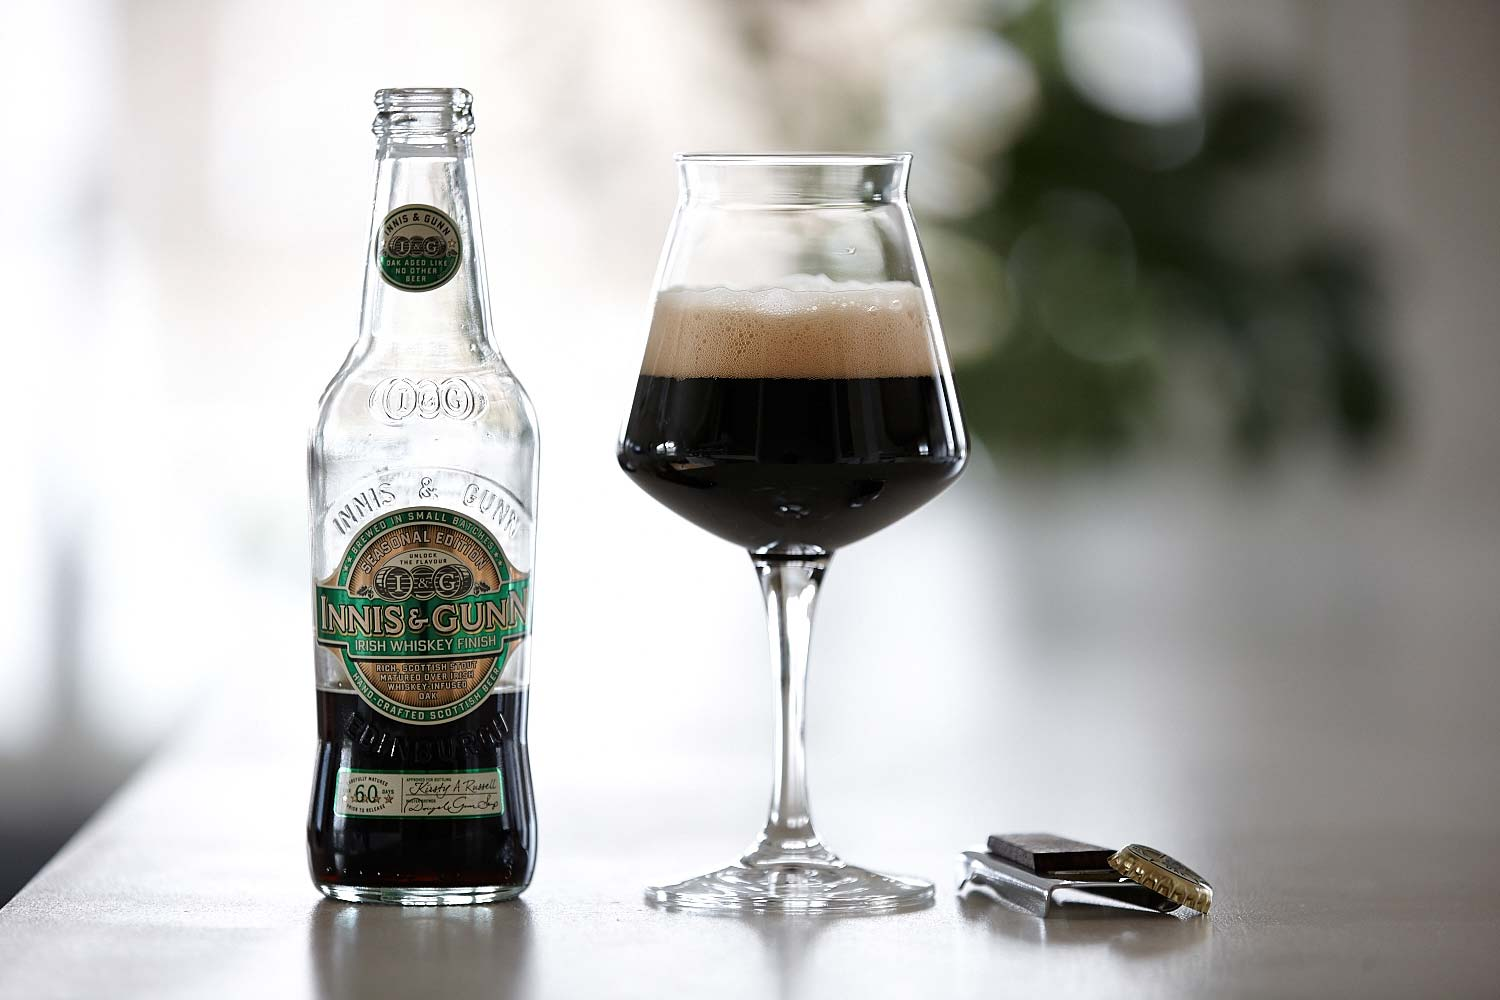 140223_Innis_Gunn_irish_whisky_finnish